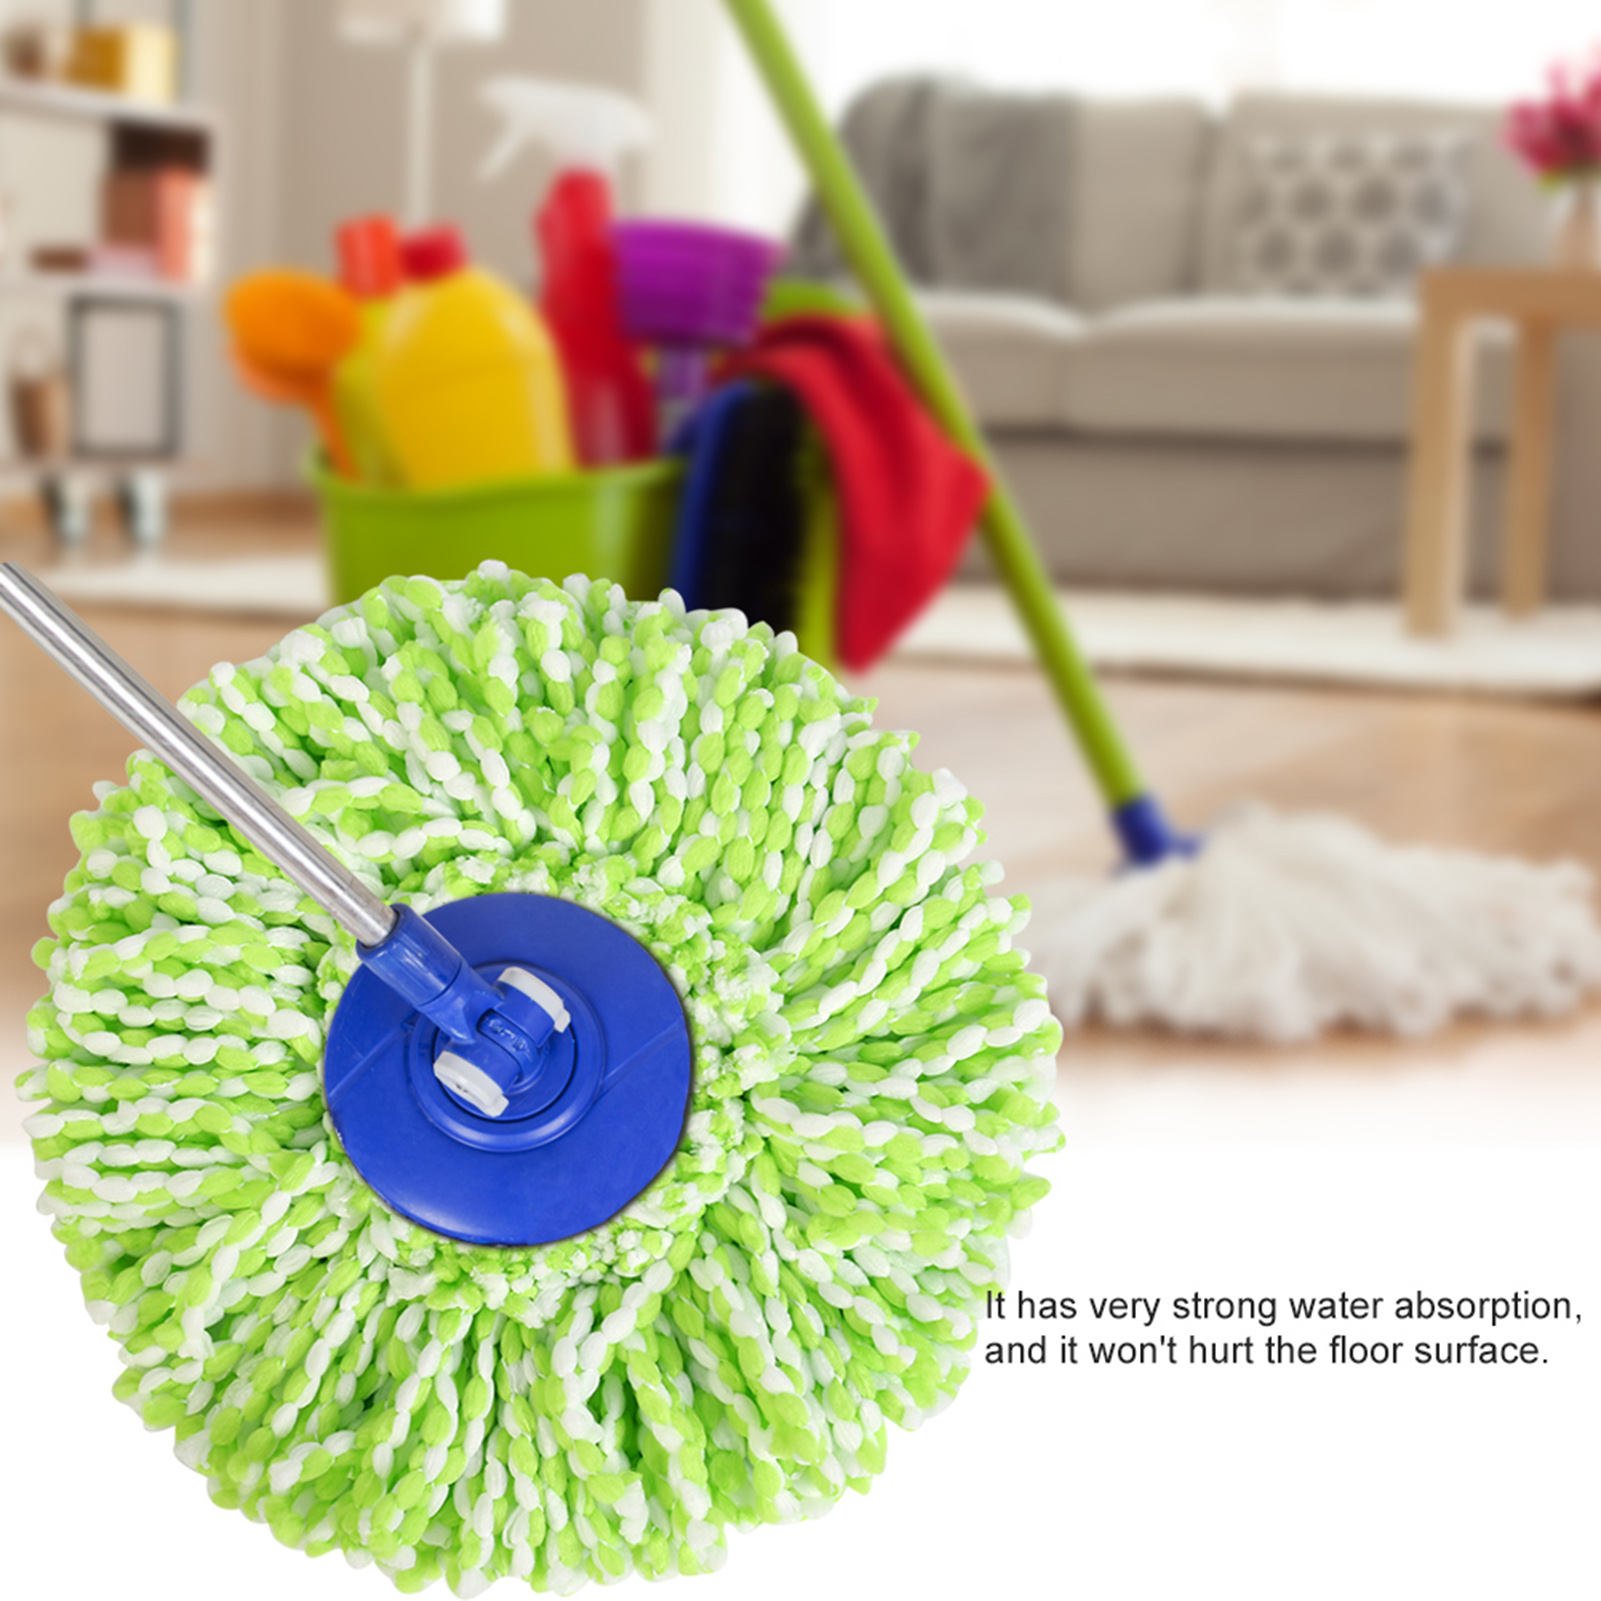 Spinning-Mops-Head-Microfiber-Refill-Rotating-360-Mop-for-Cleaning-AG thumbnail 20